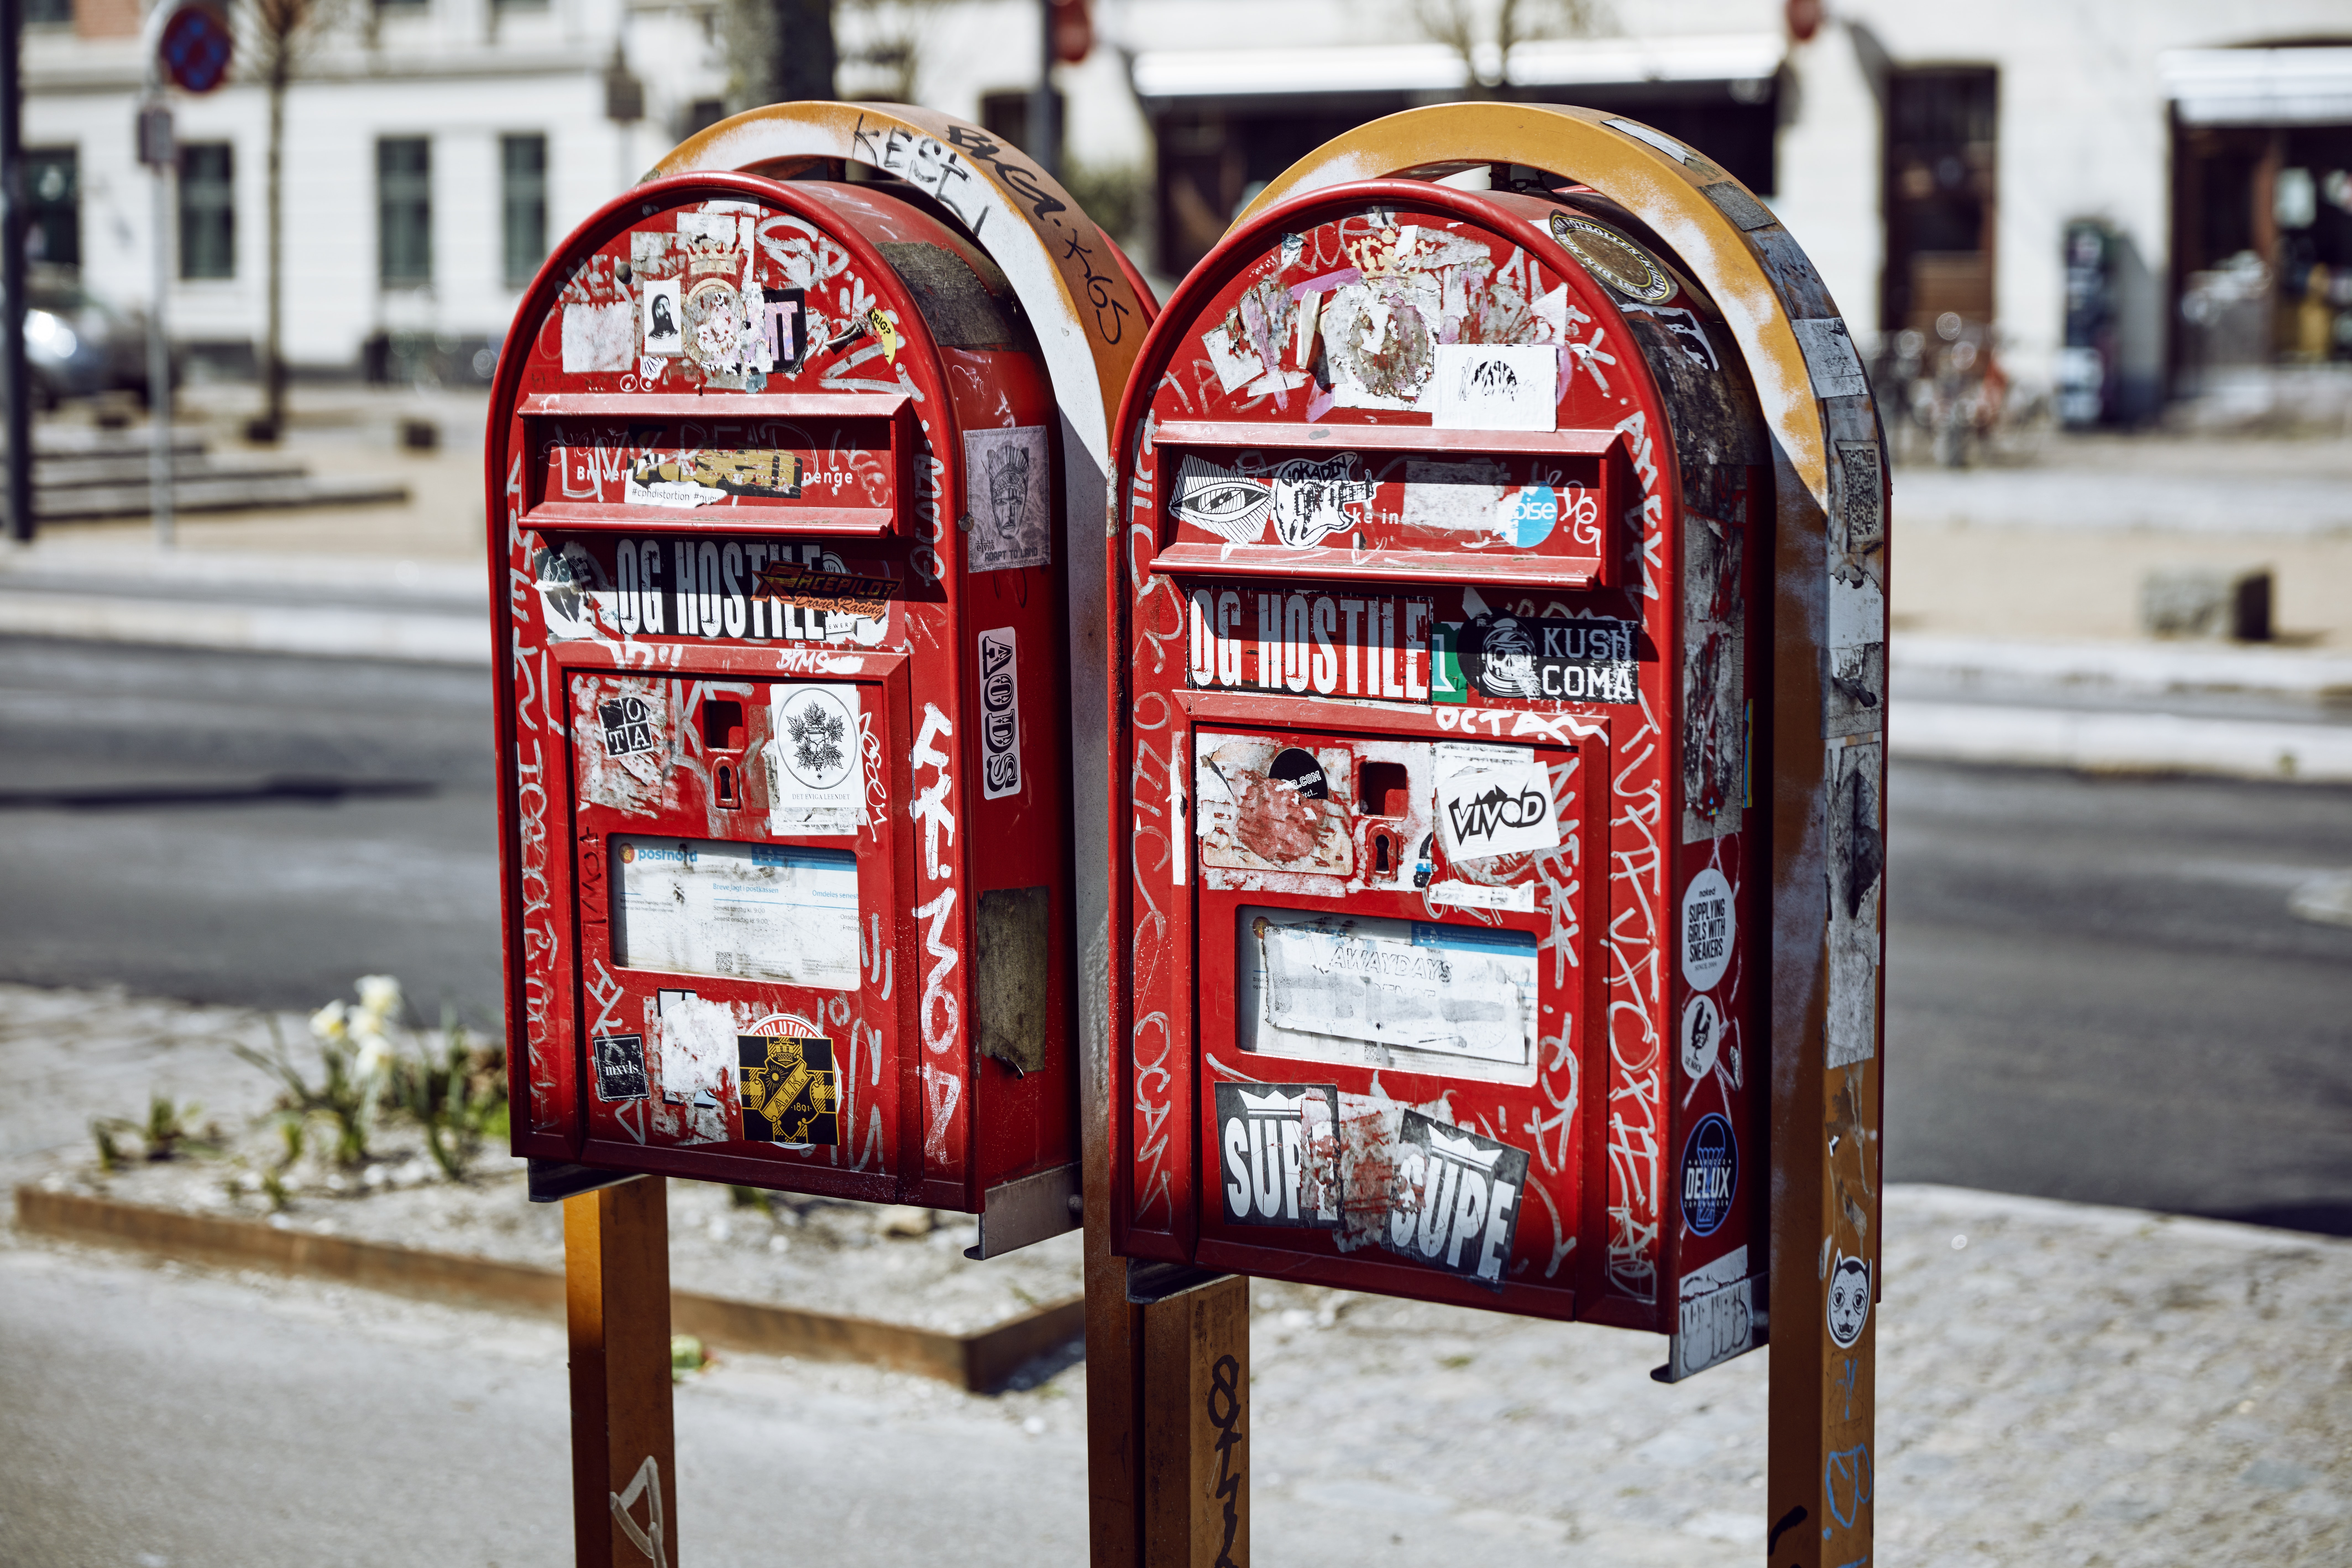 two mailboxes on street during daytime